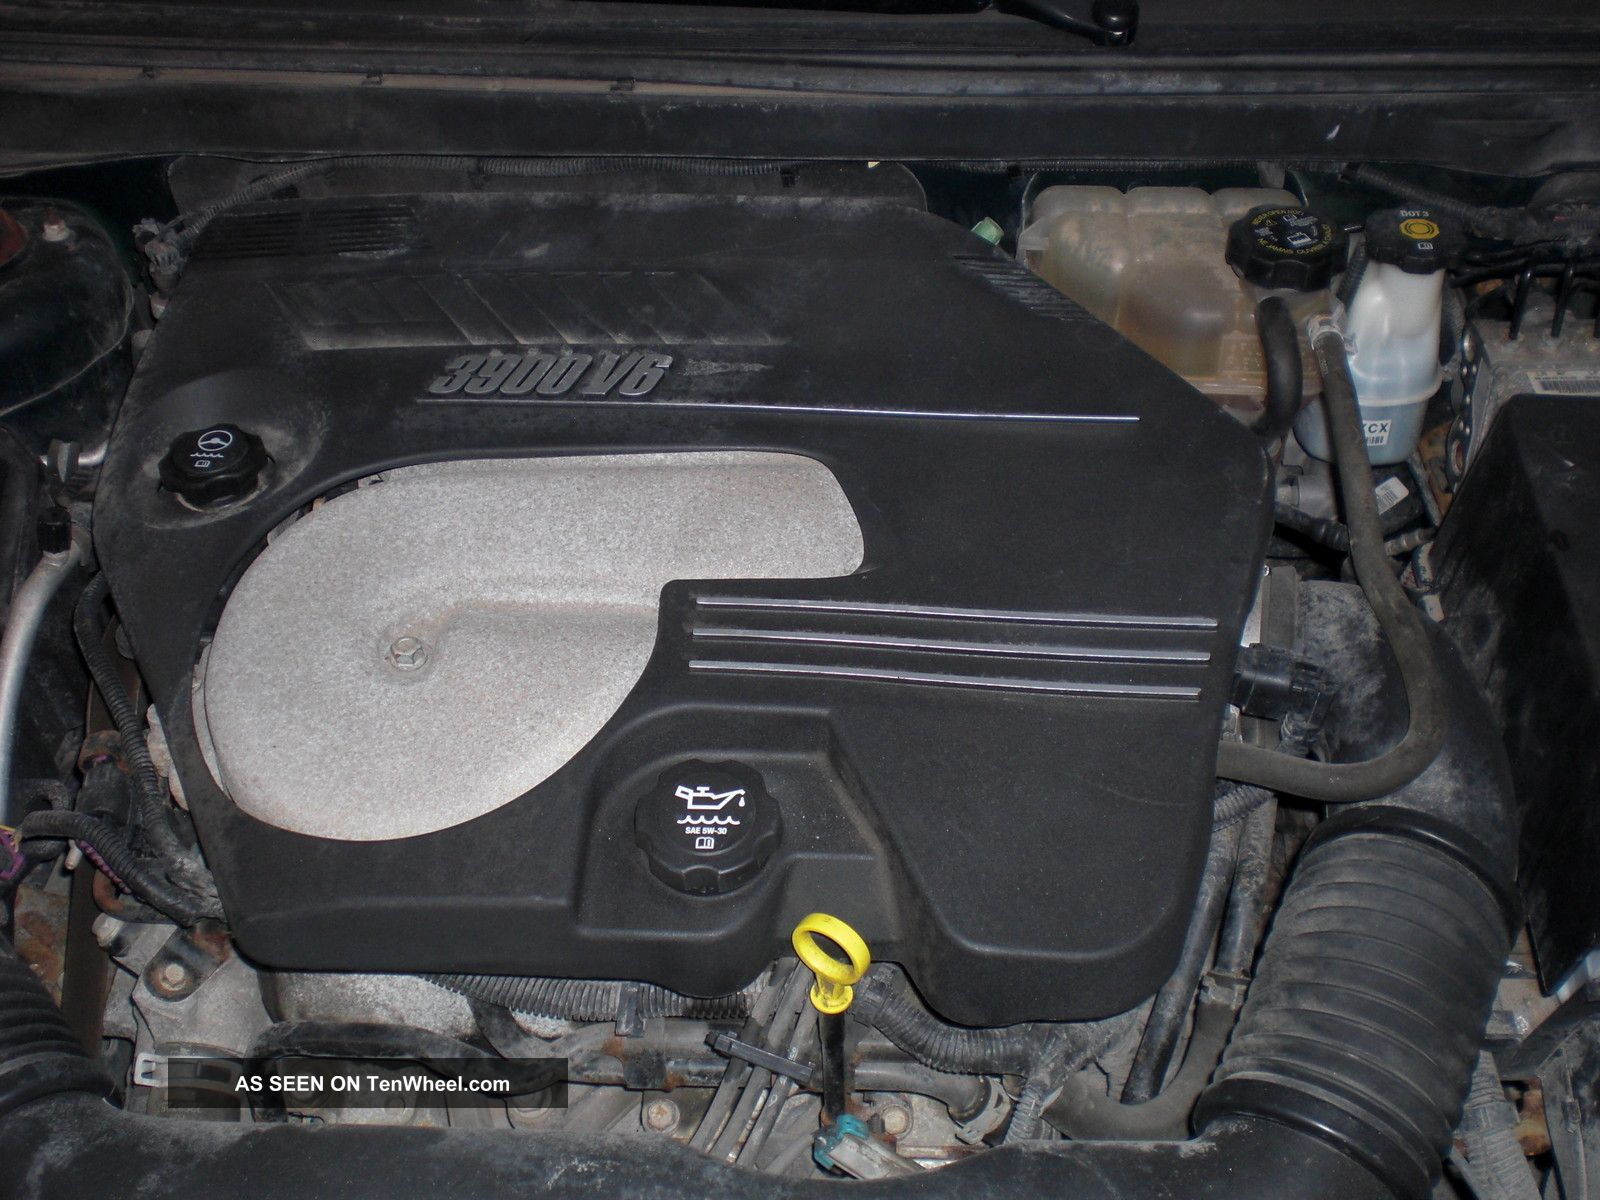 2006 Pontiac G6 Gtp With 3 9 Liter Motor And 6 Speed